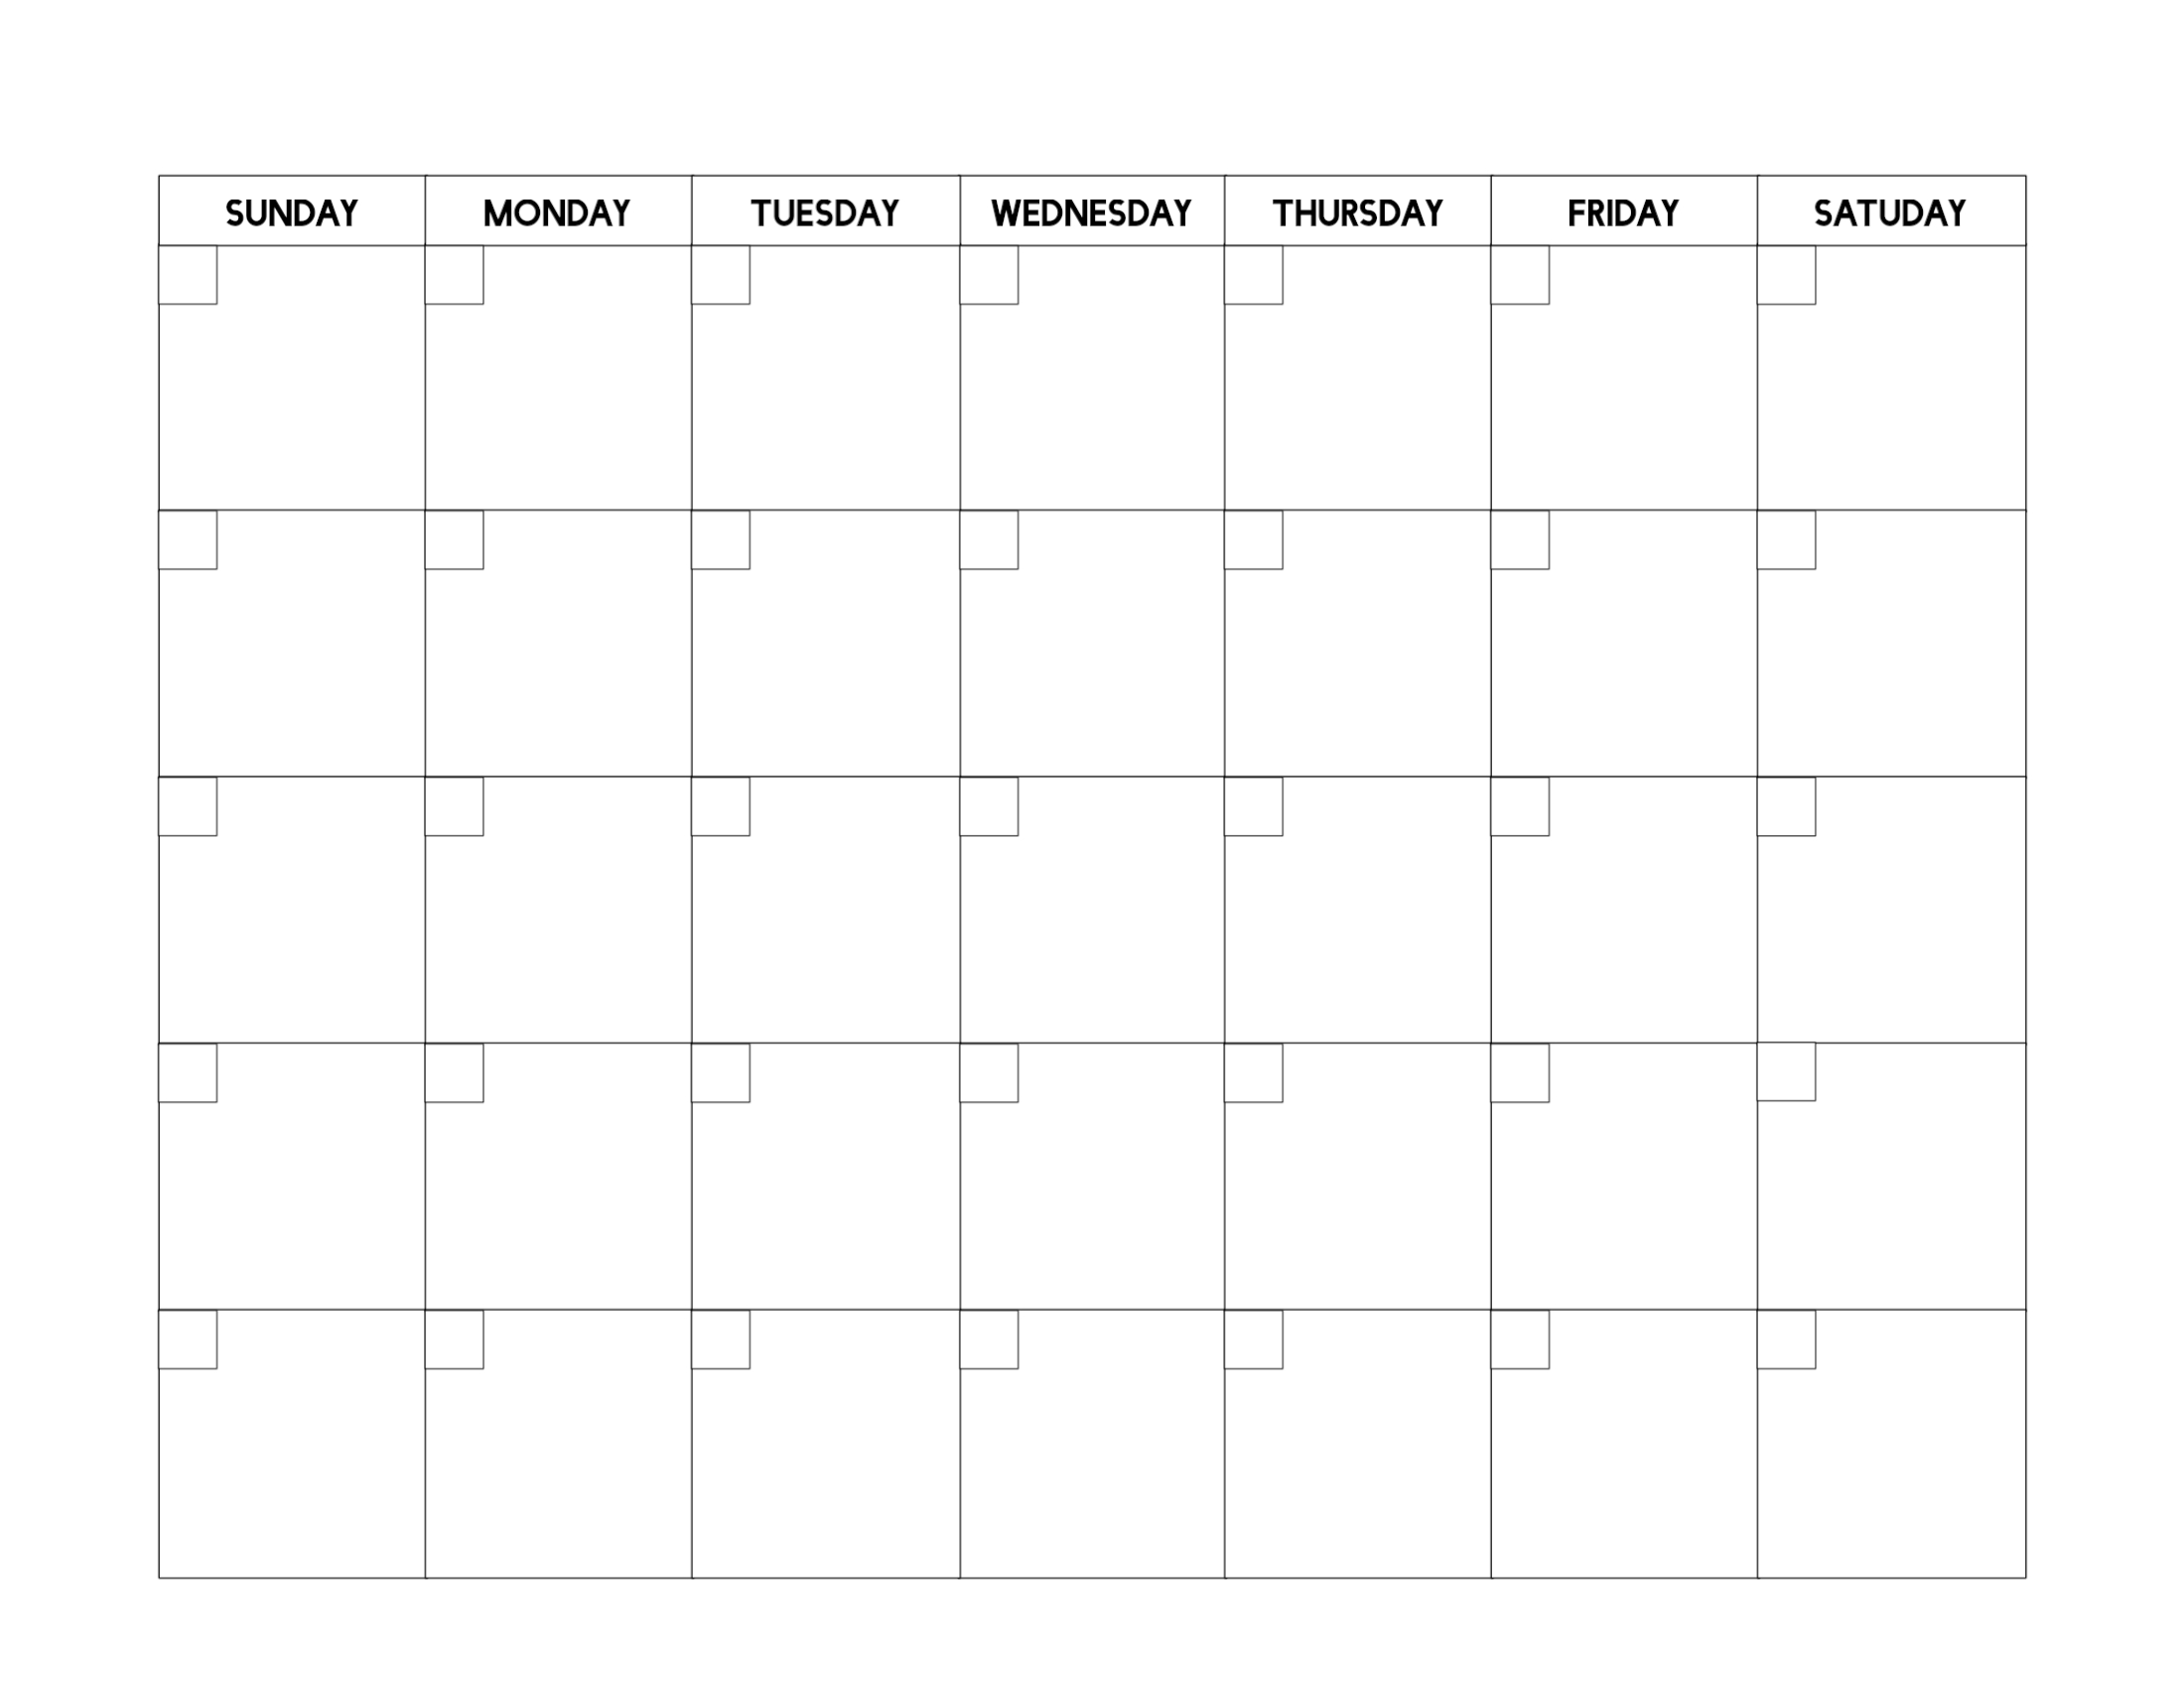 Free Printable Blank Calendar Template - Paper Trail Design regarding To Fill In Blankcalendar